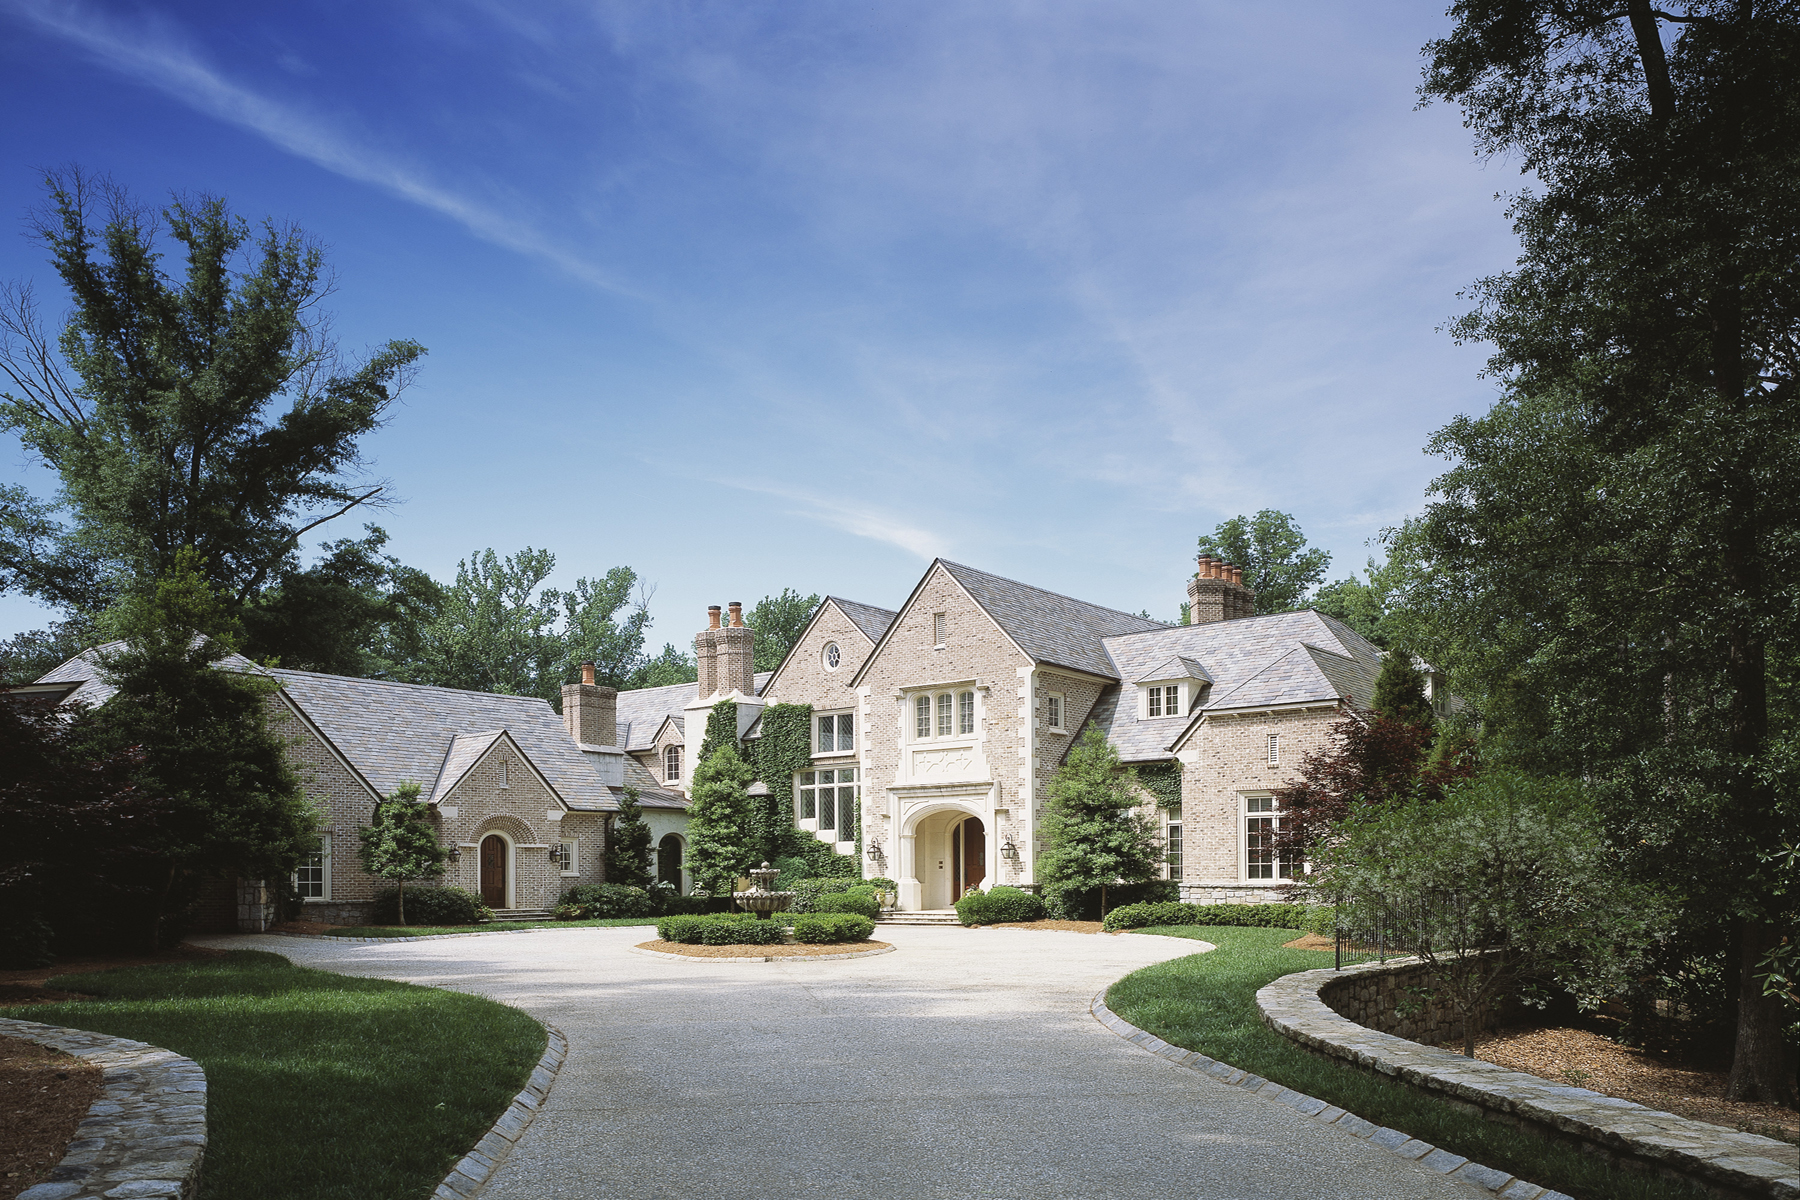 Maison unifamiliale pour l Vente à An Award Winning Tudor In Buckhead 2032 W Paces Ferry Road Buckhead, Atlanta, Georgia, 30327 États-Unis